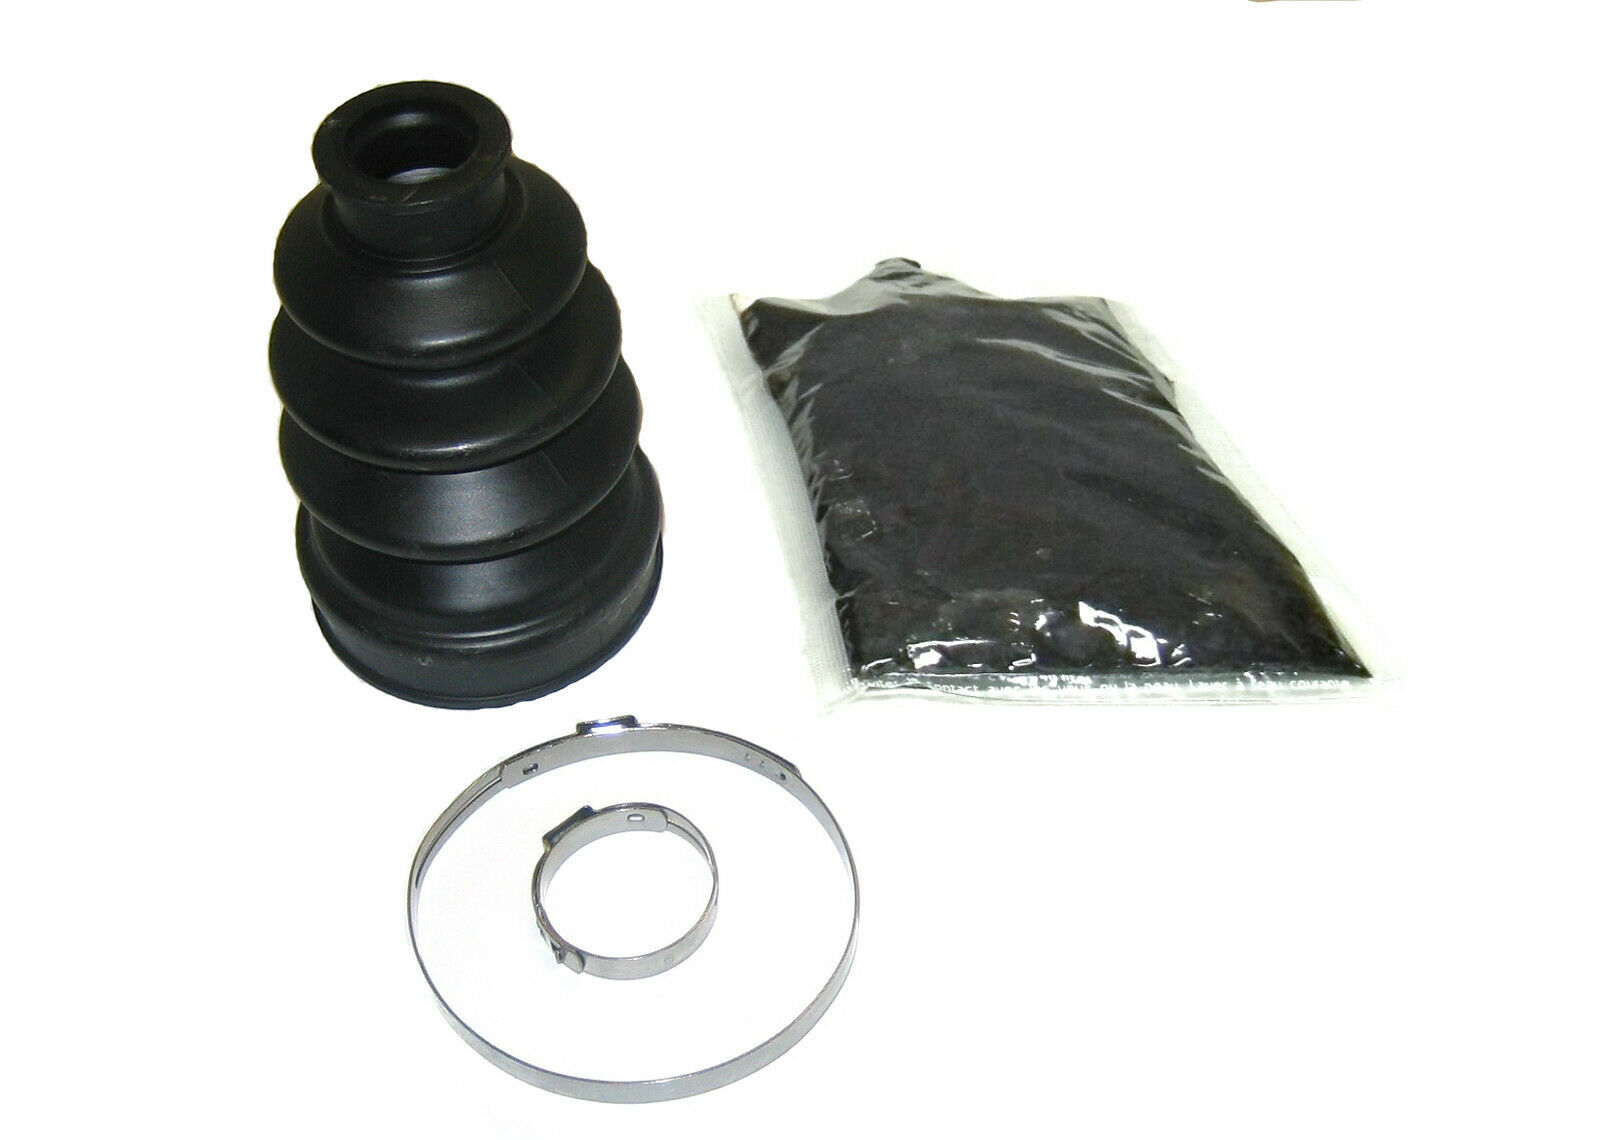 2007-2011 fits Yamaha Grizzly 350 YFM350 4x4 IRS Automatic Rear Inner CV Boot Kit